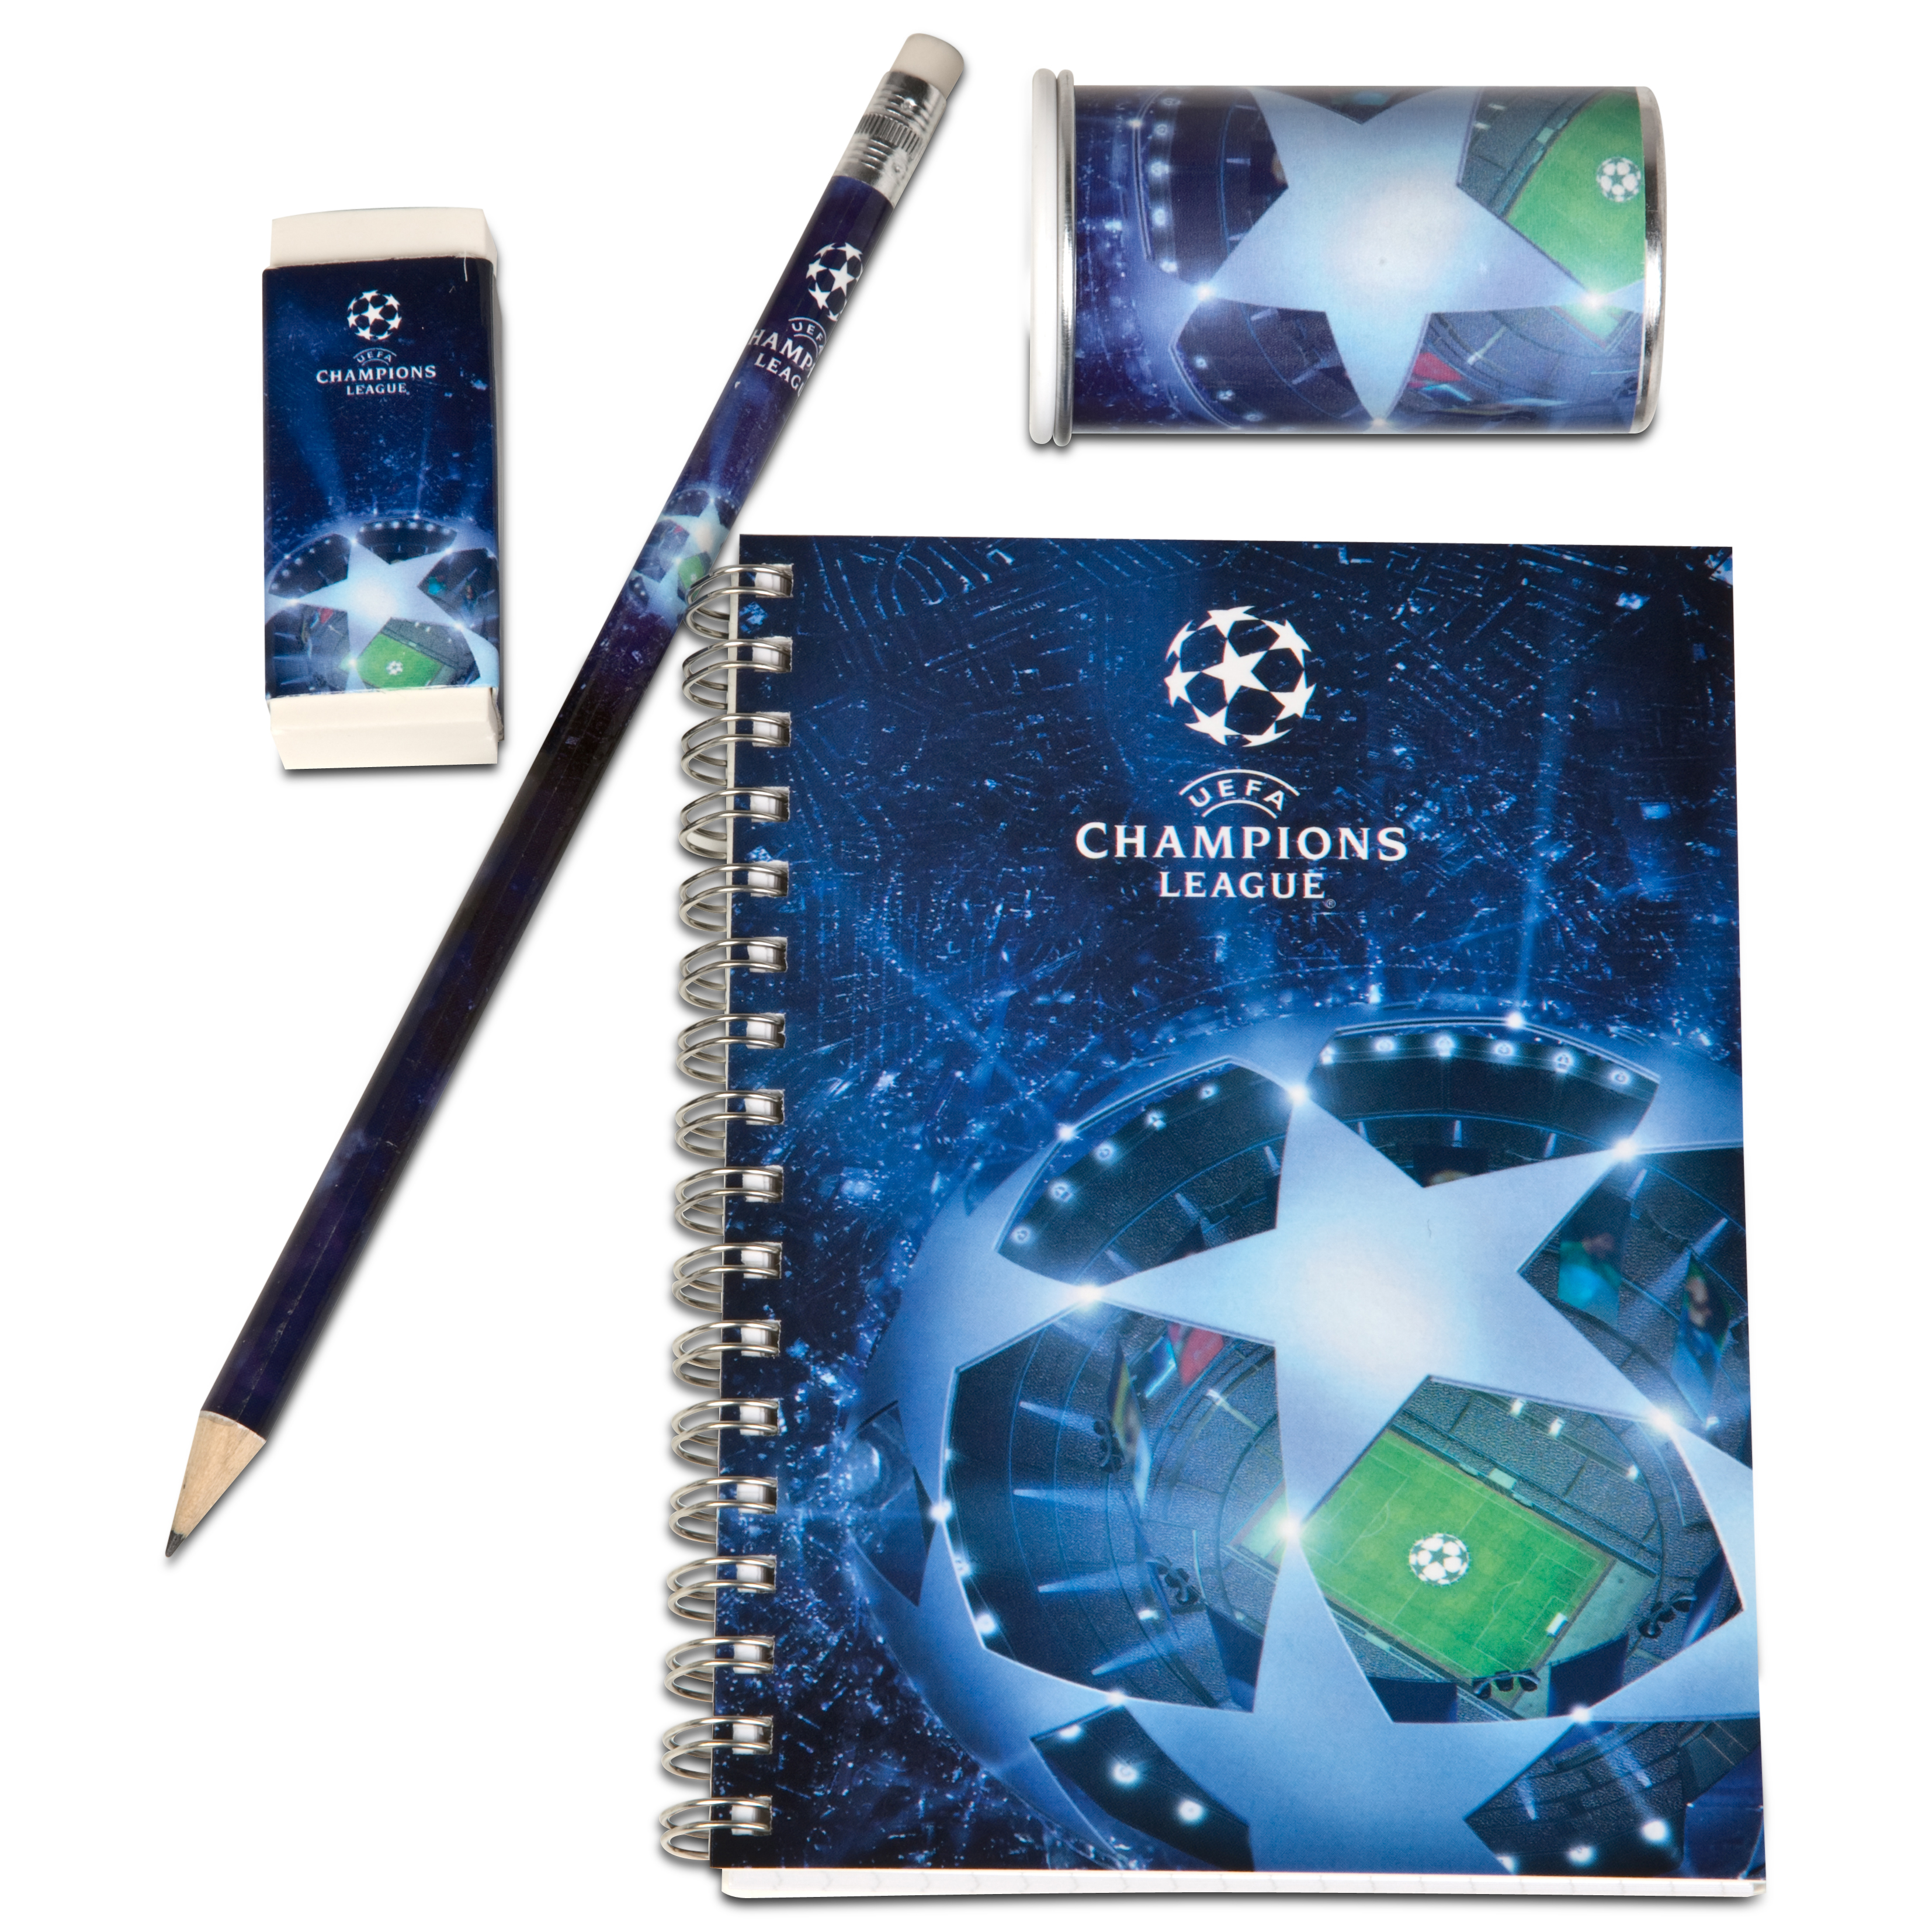 UEFA Champions League Stationery Set - 4 Pack